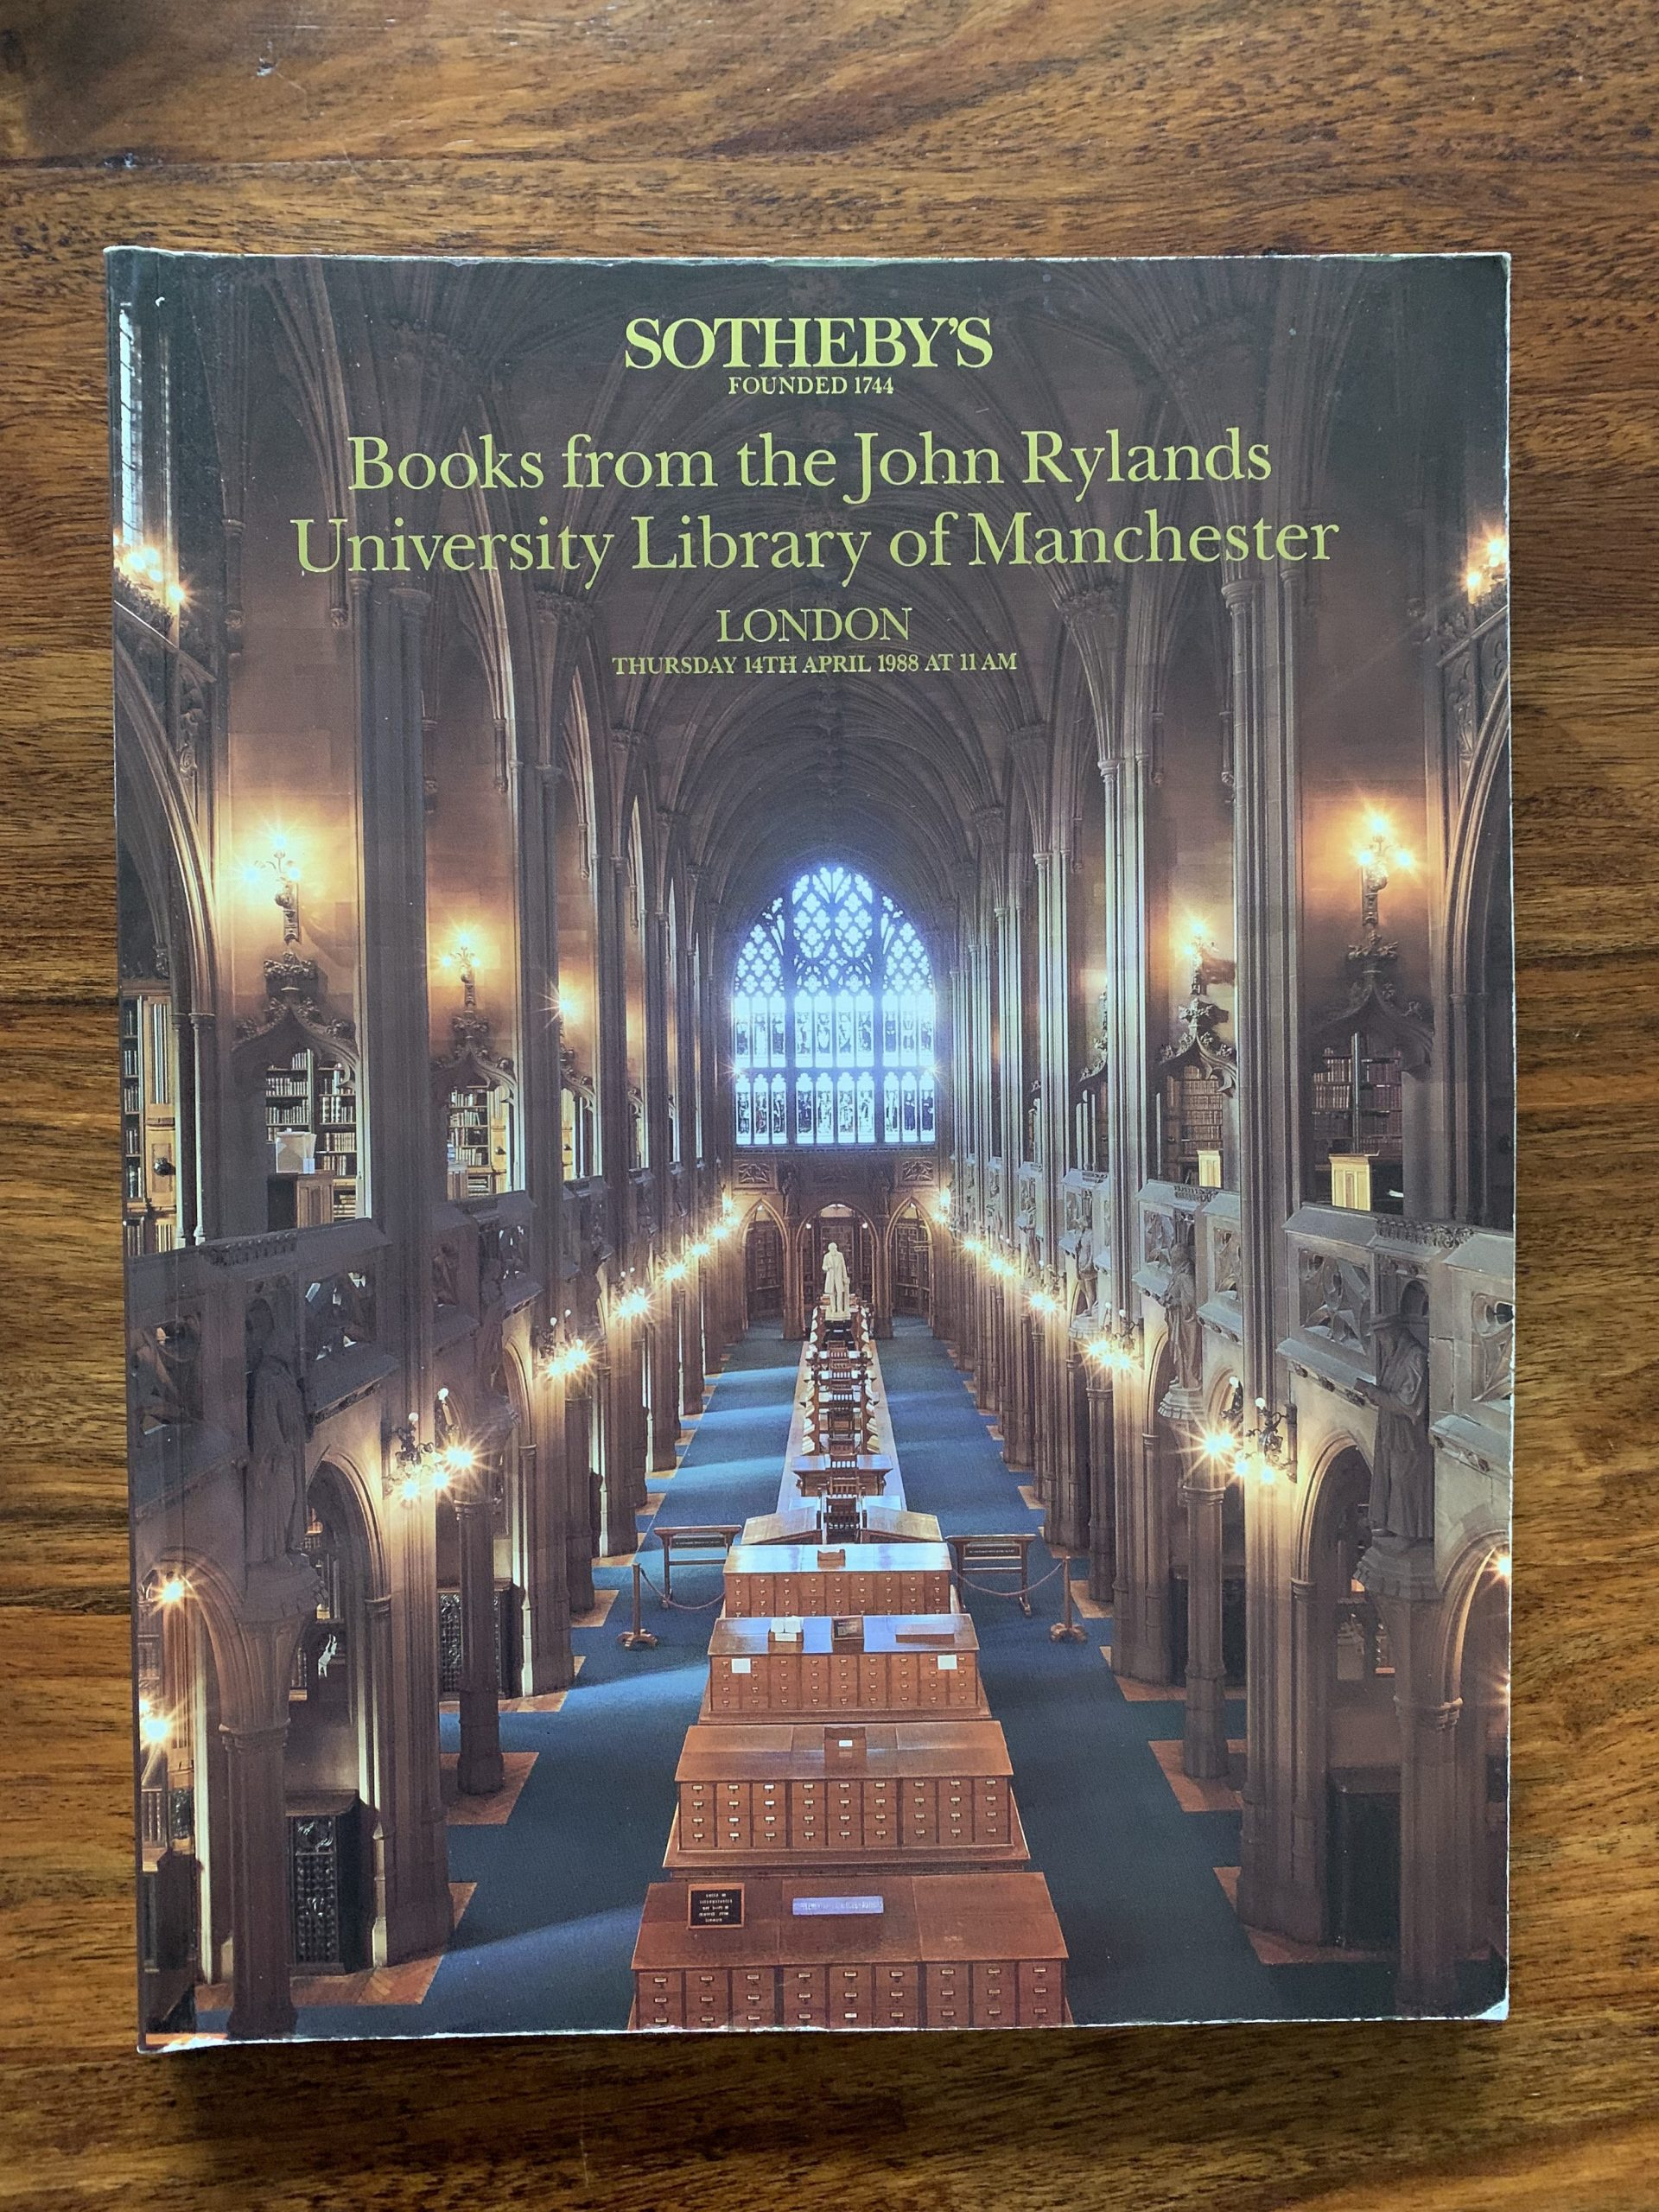 Sotheby's. Books from the John Rylands University Library of Manchester